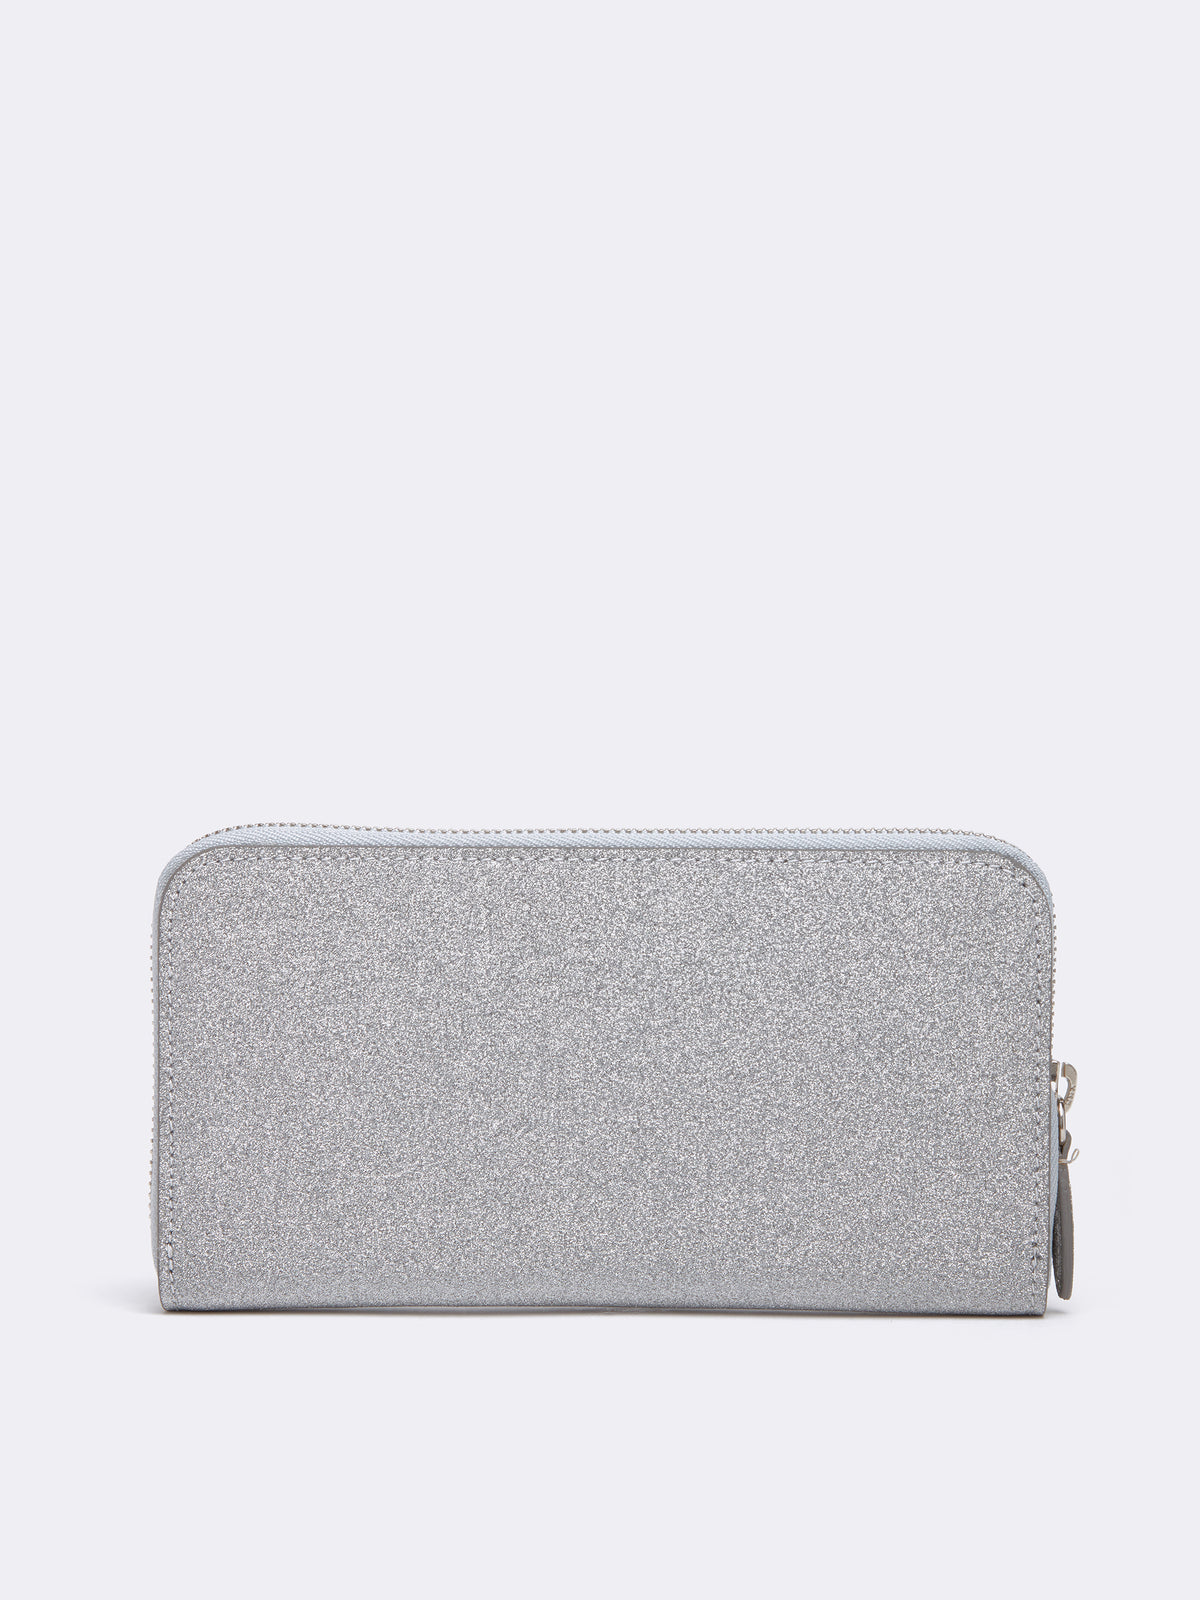 Mark Cross Leather Zip Wallet Luminous Glitter Silver Back